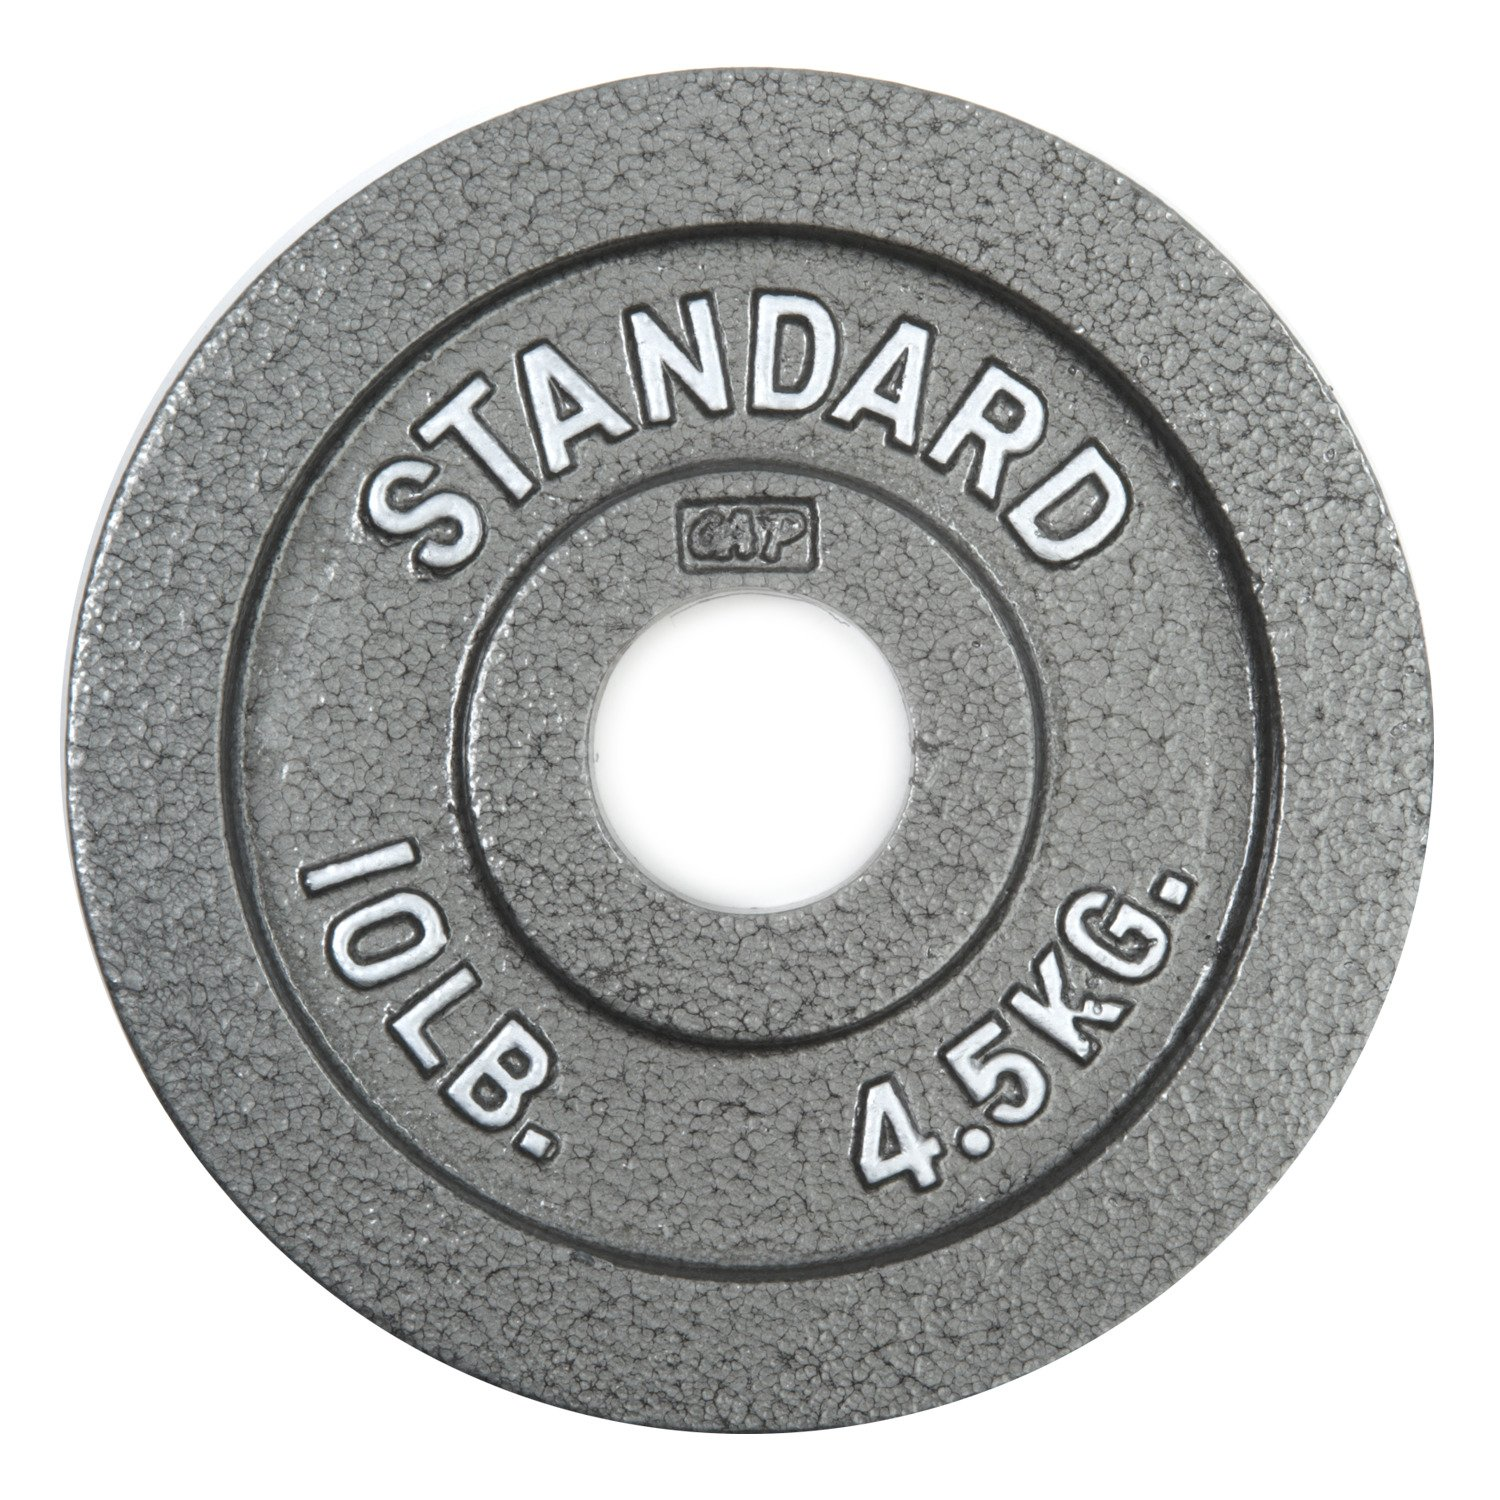 e095bc48543 Display product reviews for CAP Barbell Slim-Line 10 lb. Olympic Plate